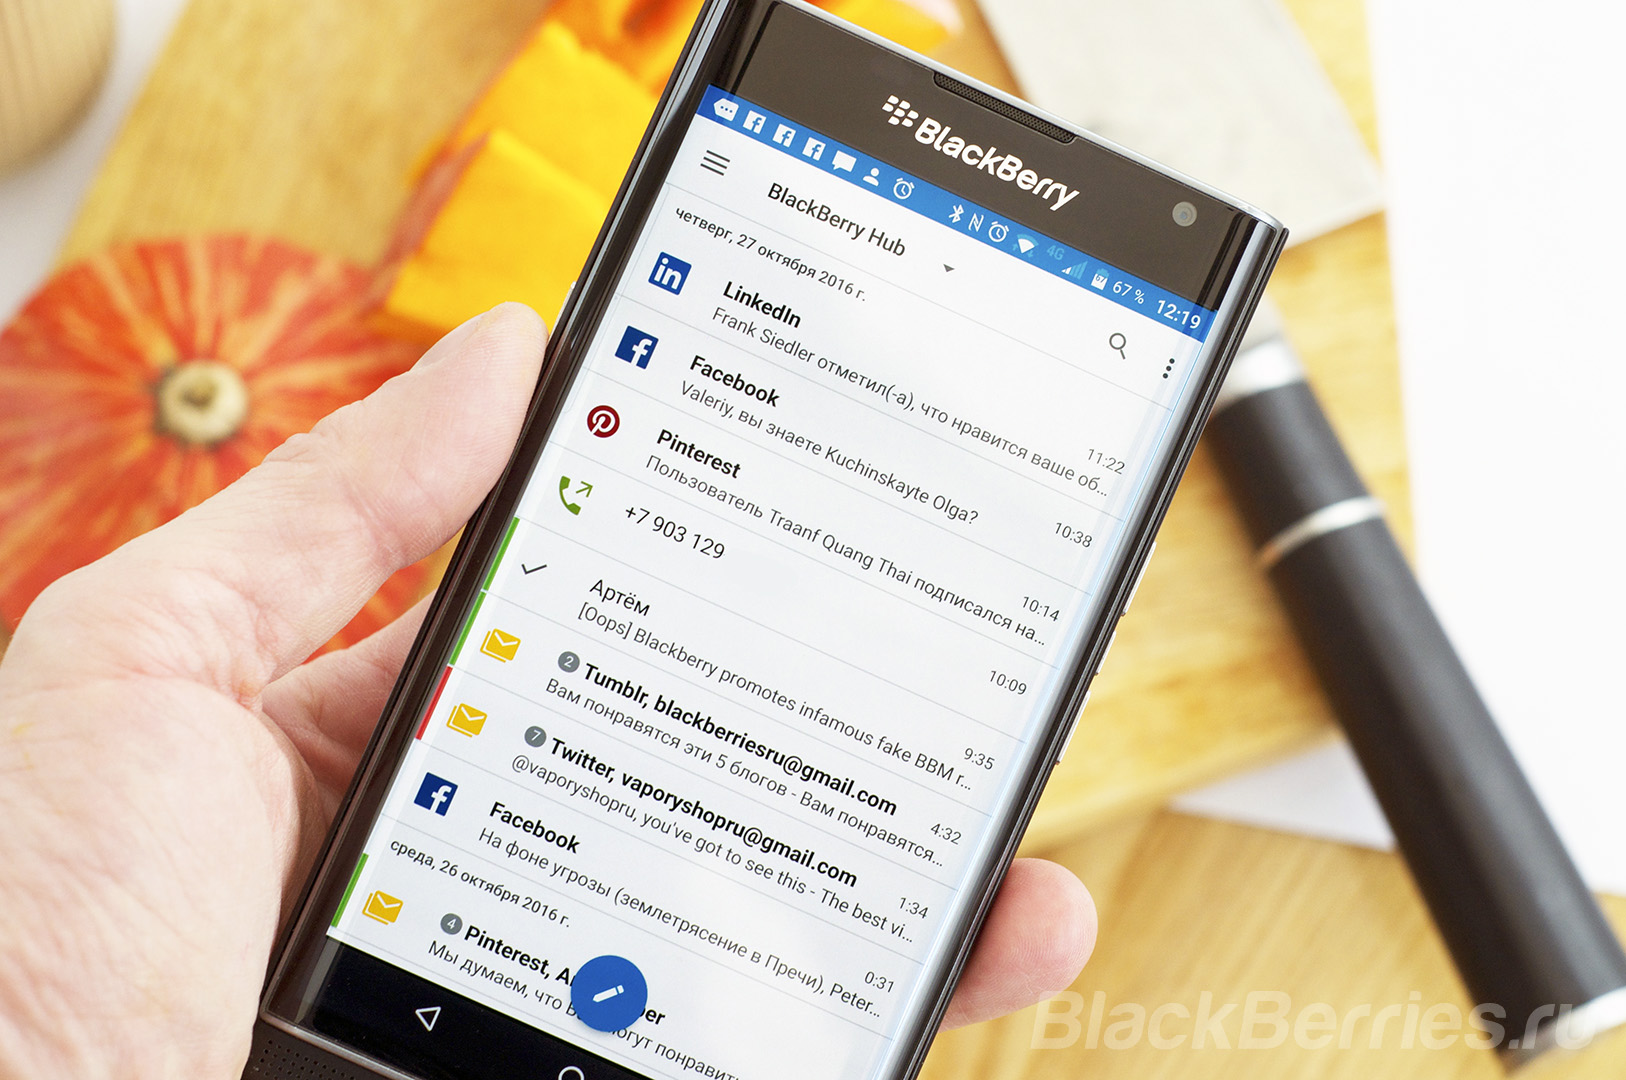 blackberry-priv-one-year-review-13